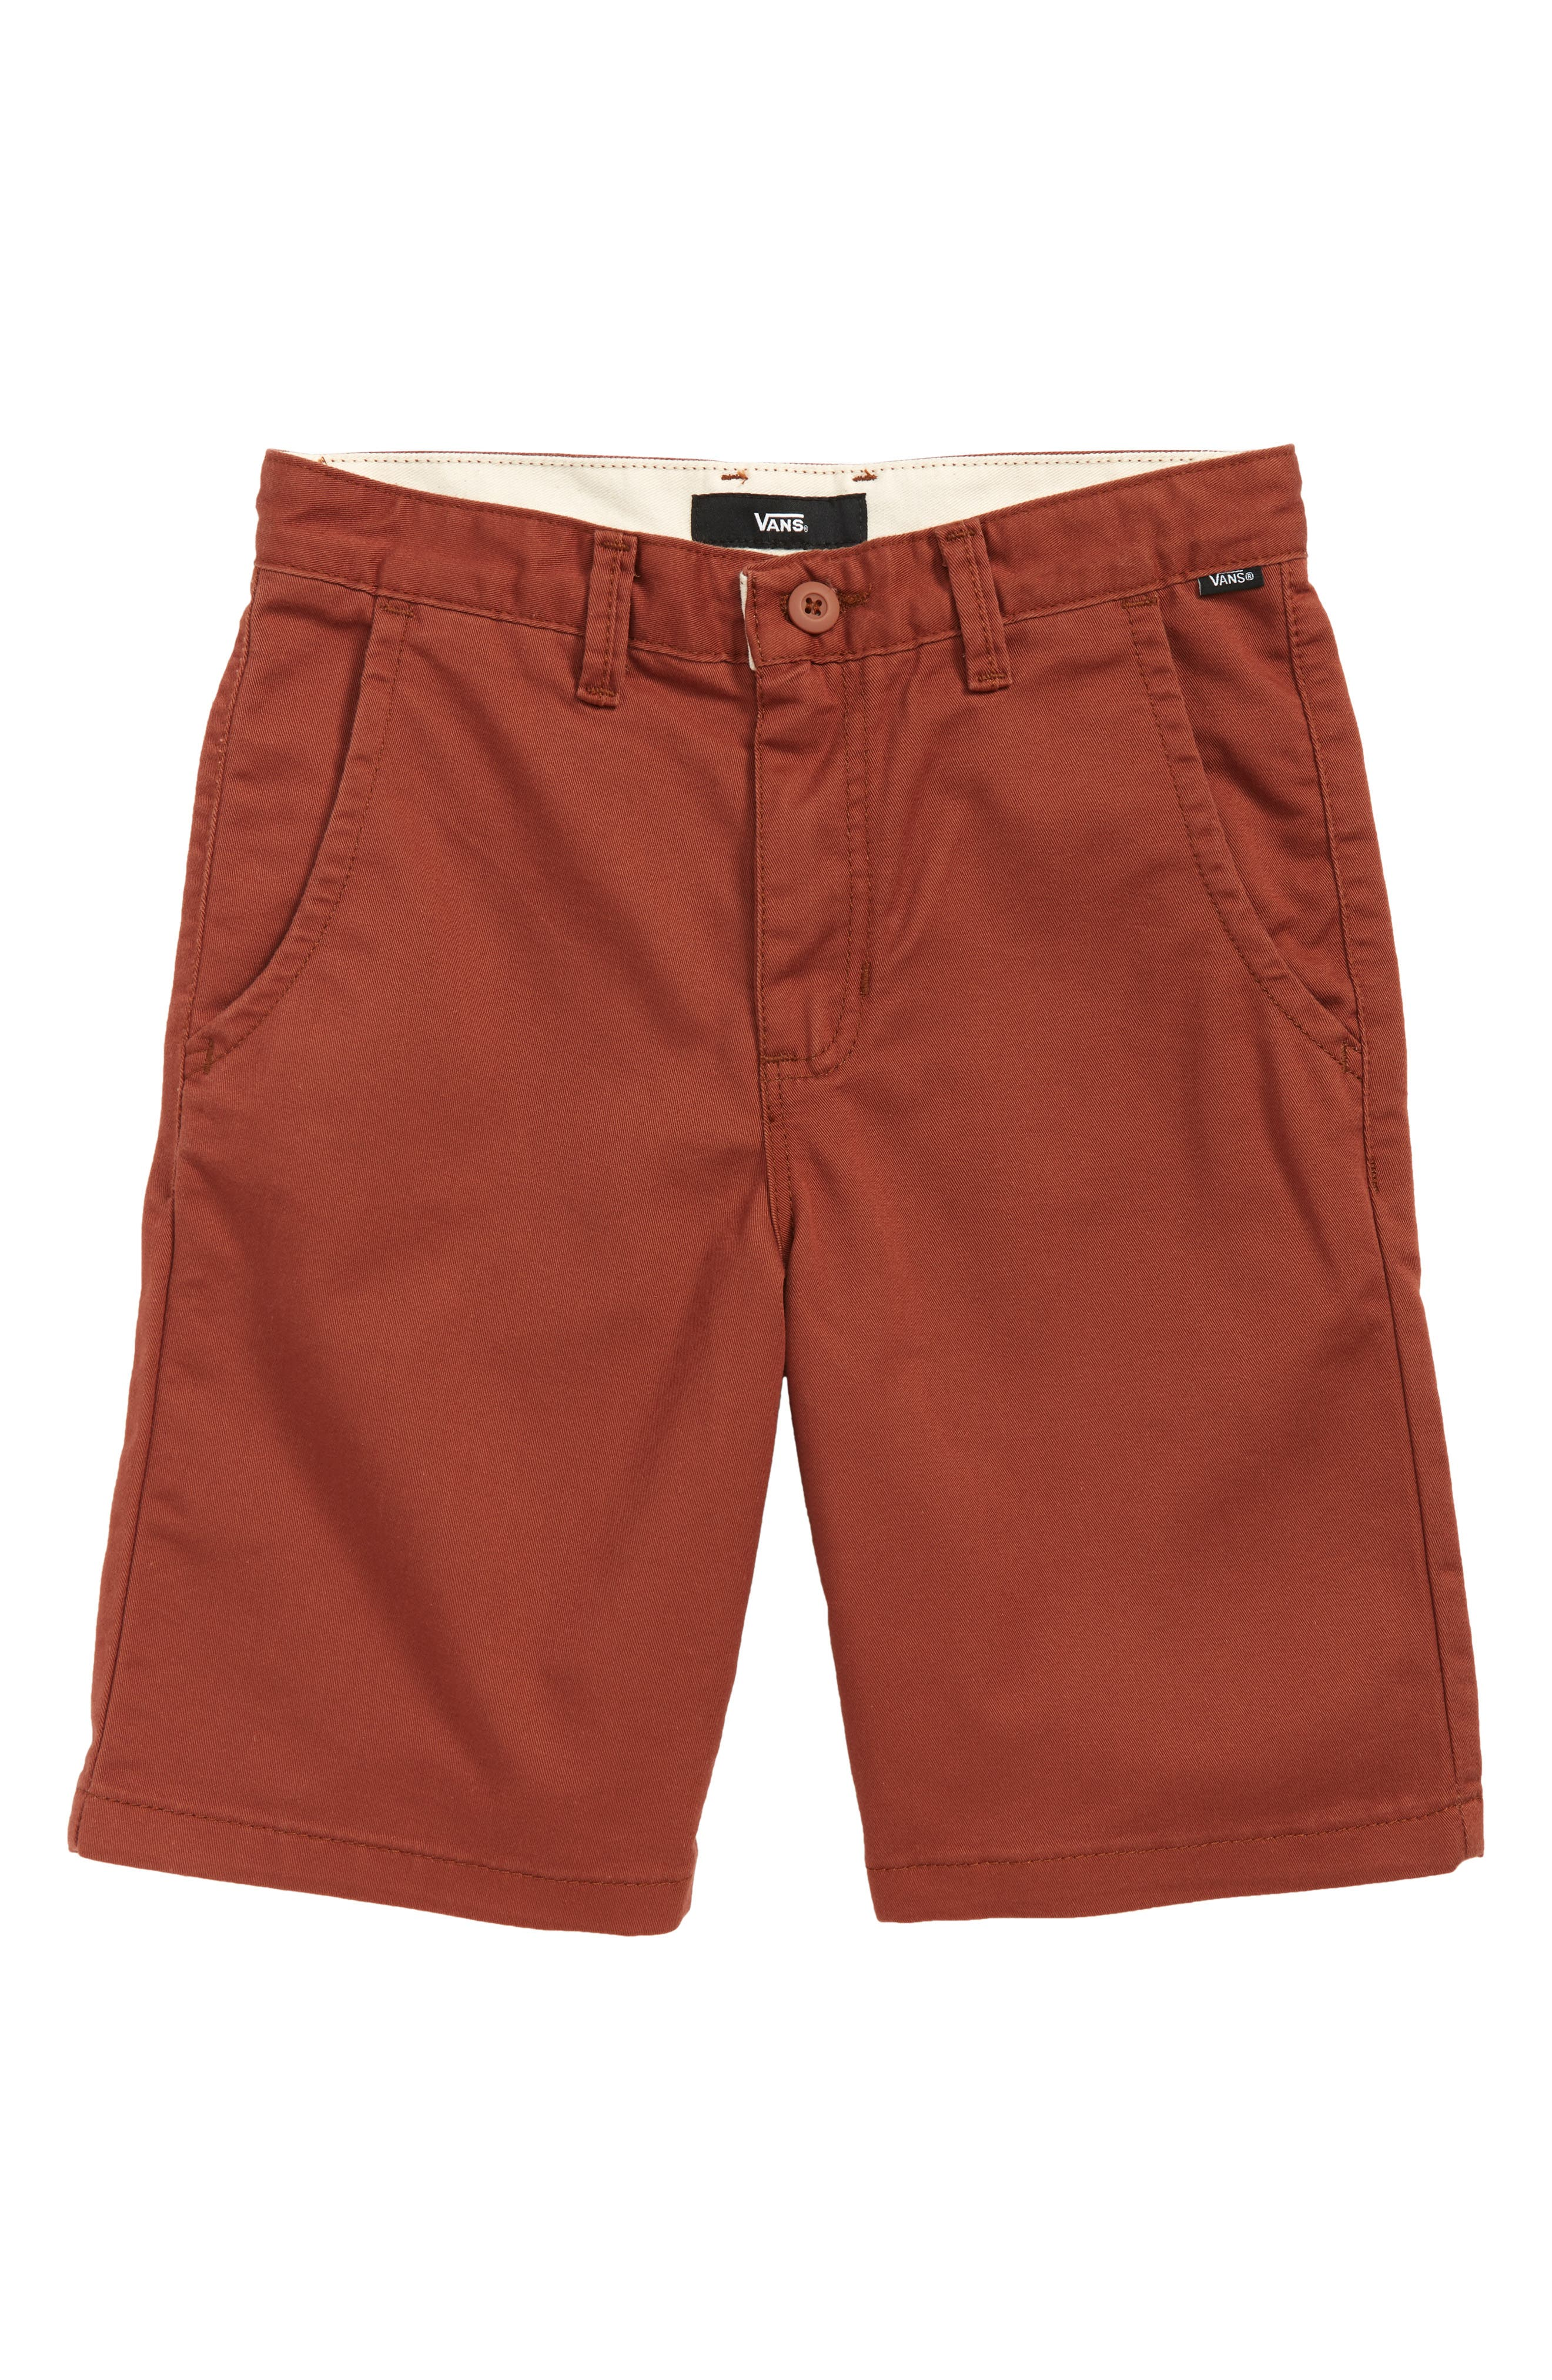 Authentic Stretch Twill Shorts,                             Main thumbnail 1, color,                             210